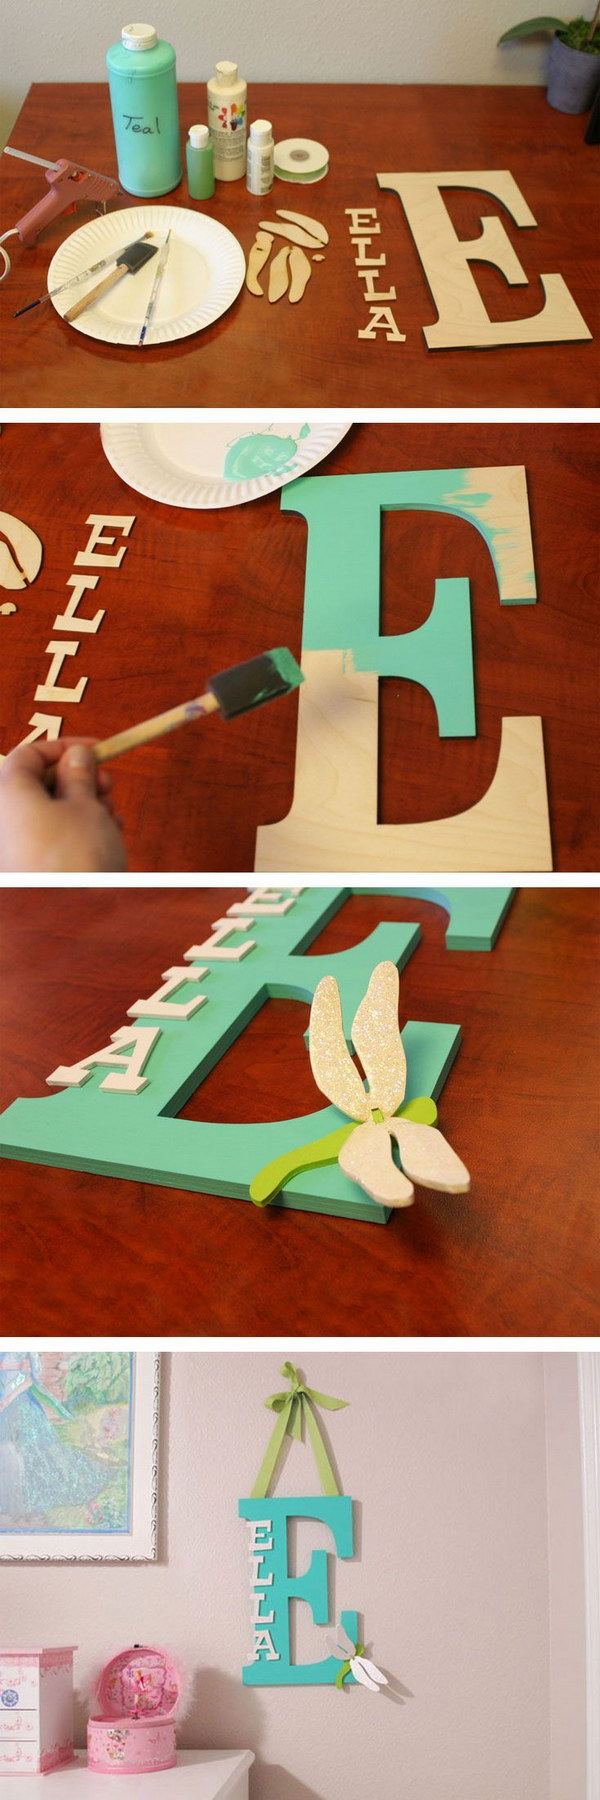 Decorating Wood Letters For Baby Room